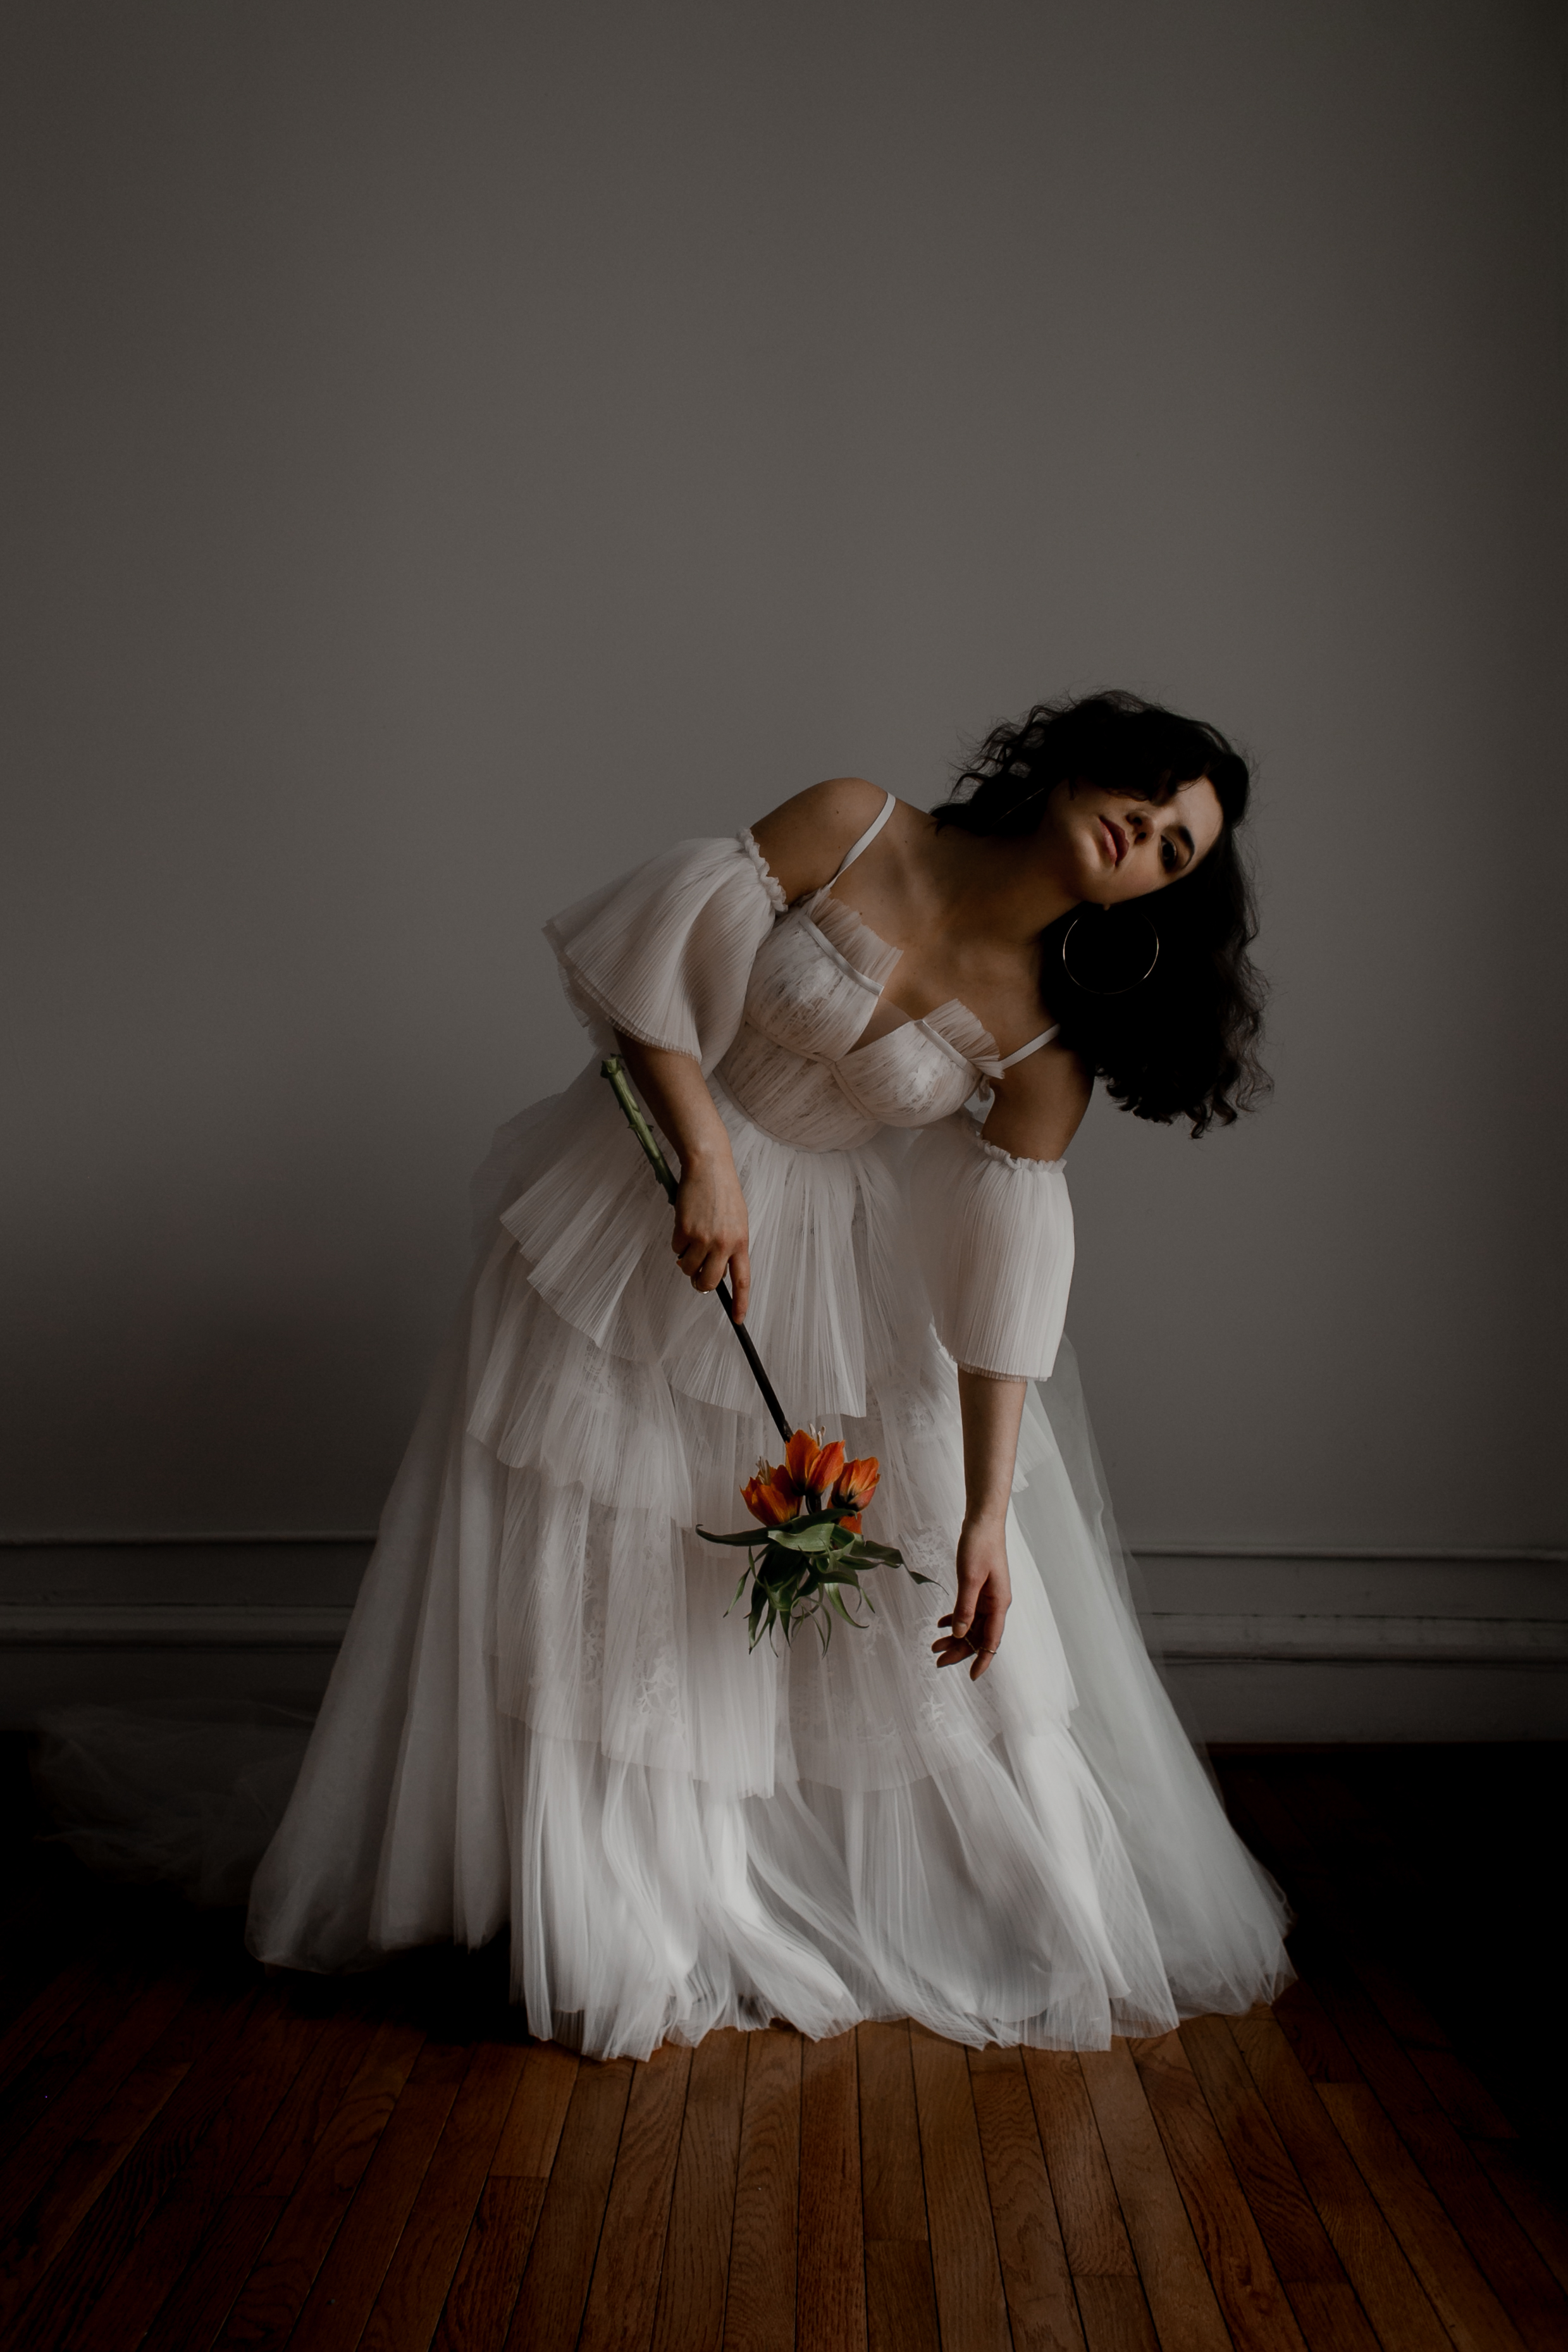 Chicago-Bride-Wedding-Dress-Varca-Edited-614.jpg